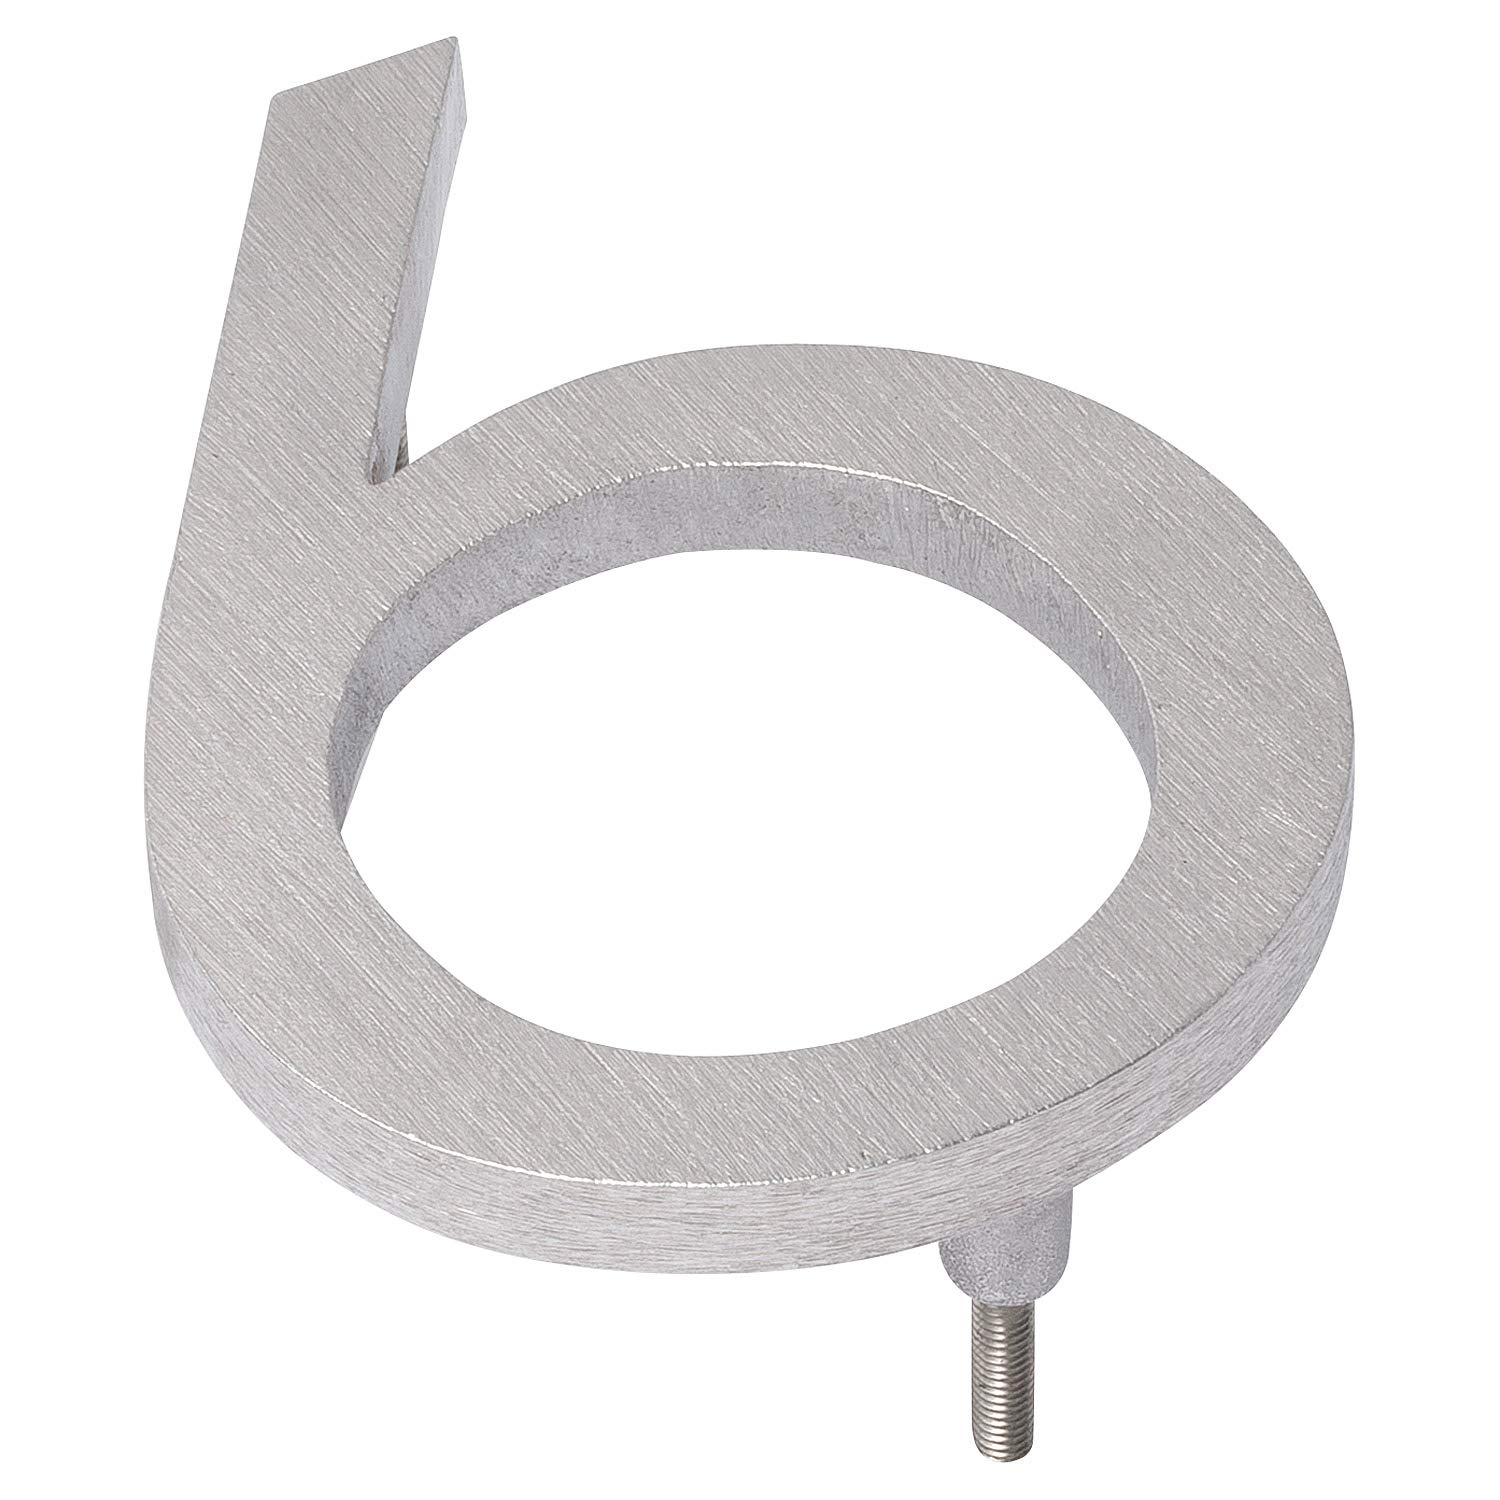 Montague Metal Products MHN-16-6-F-BA1 Floating House Number, 16'' x 11.63'' x 0.375'' Polished Aluminum